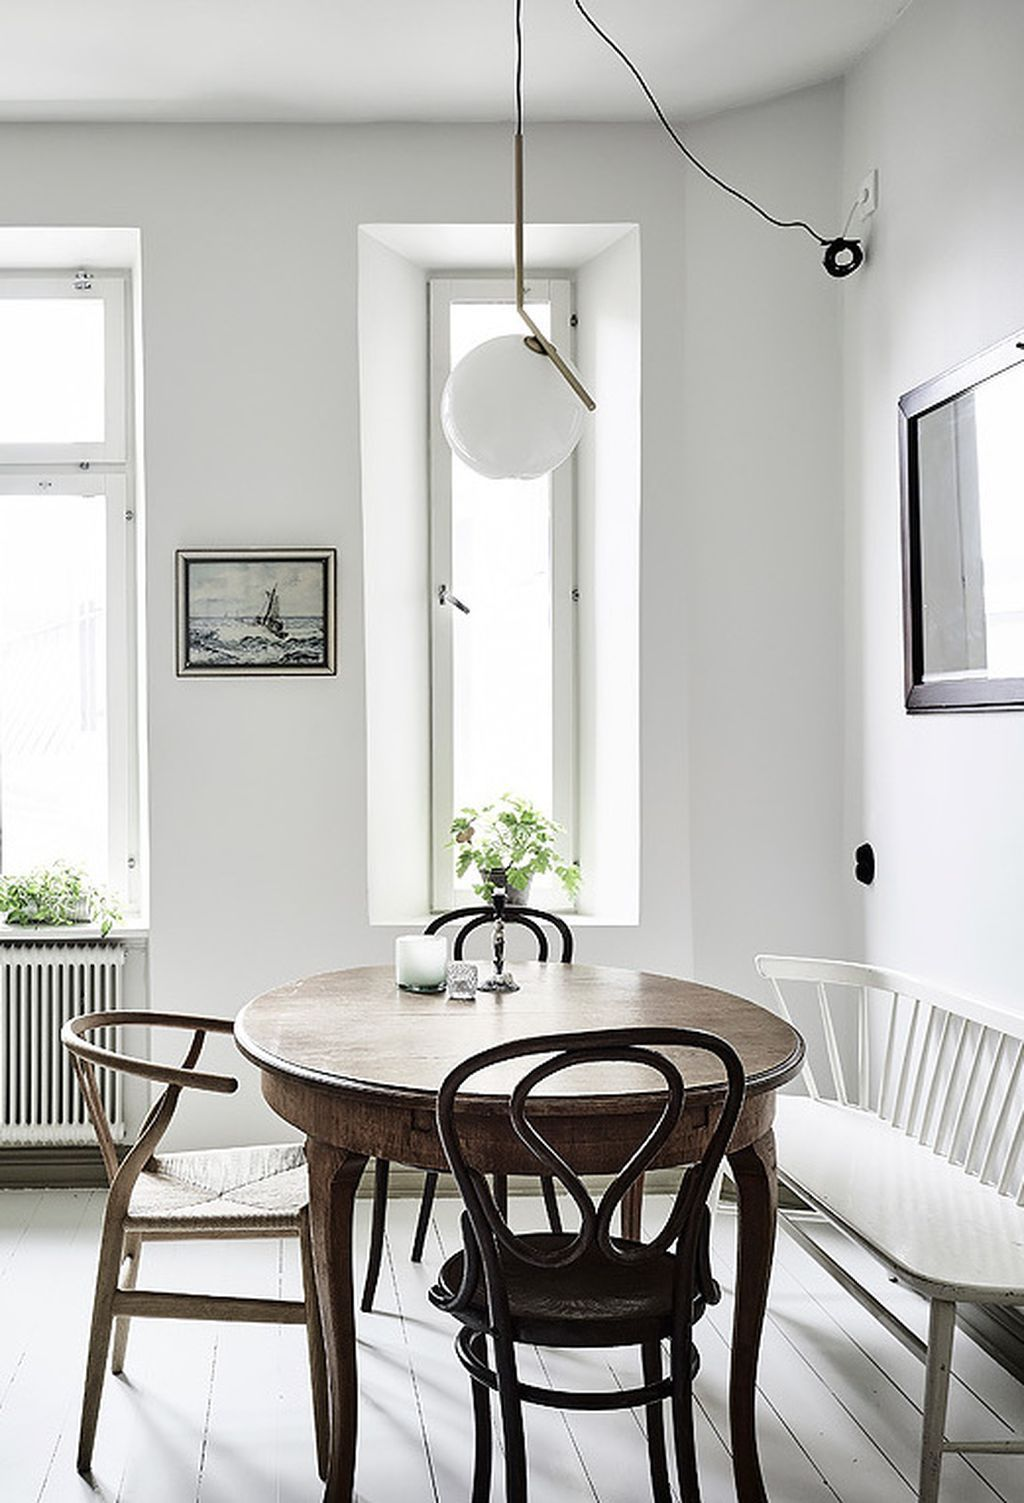 50 Simple Scandinavian Dining Room Ideas Decorating Ideas Home Decor Ideas And Tips Dining Room Small Small Round Kitchen Table Dining Table With Bench